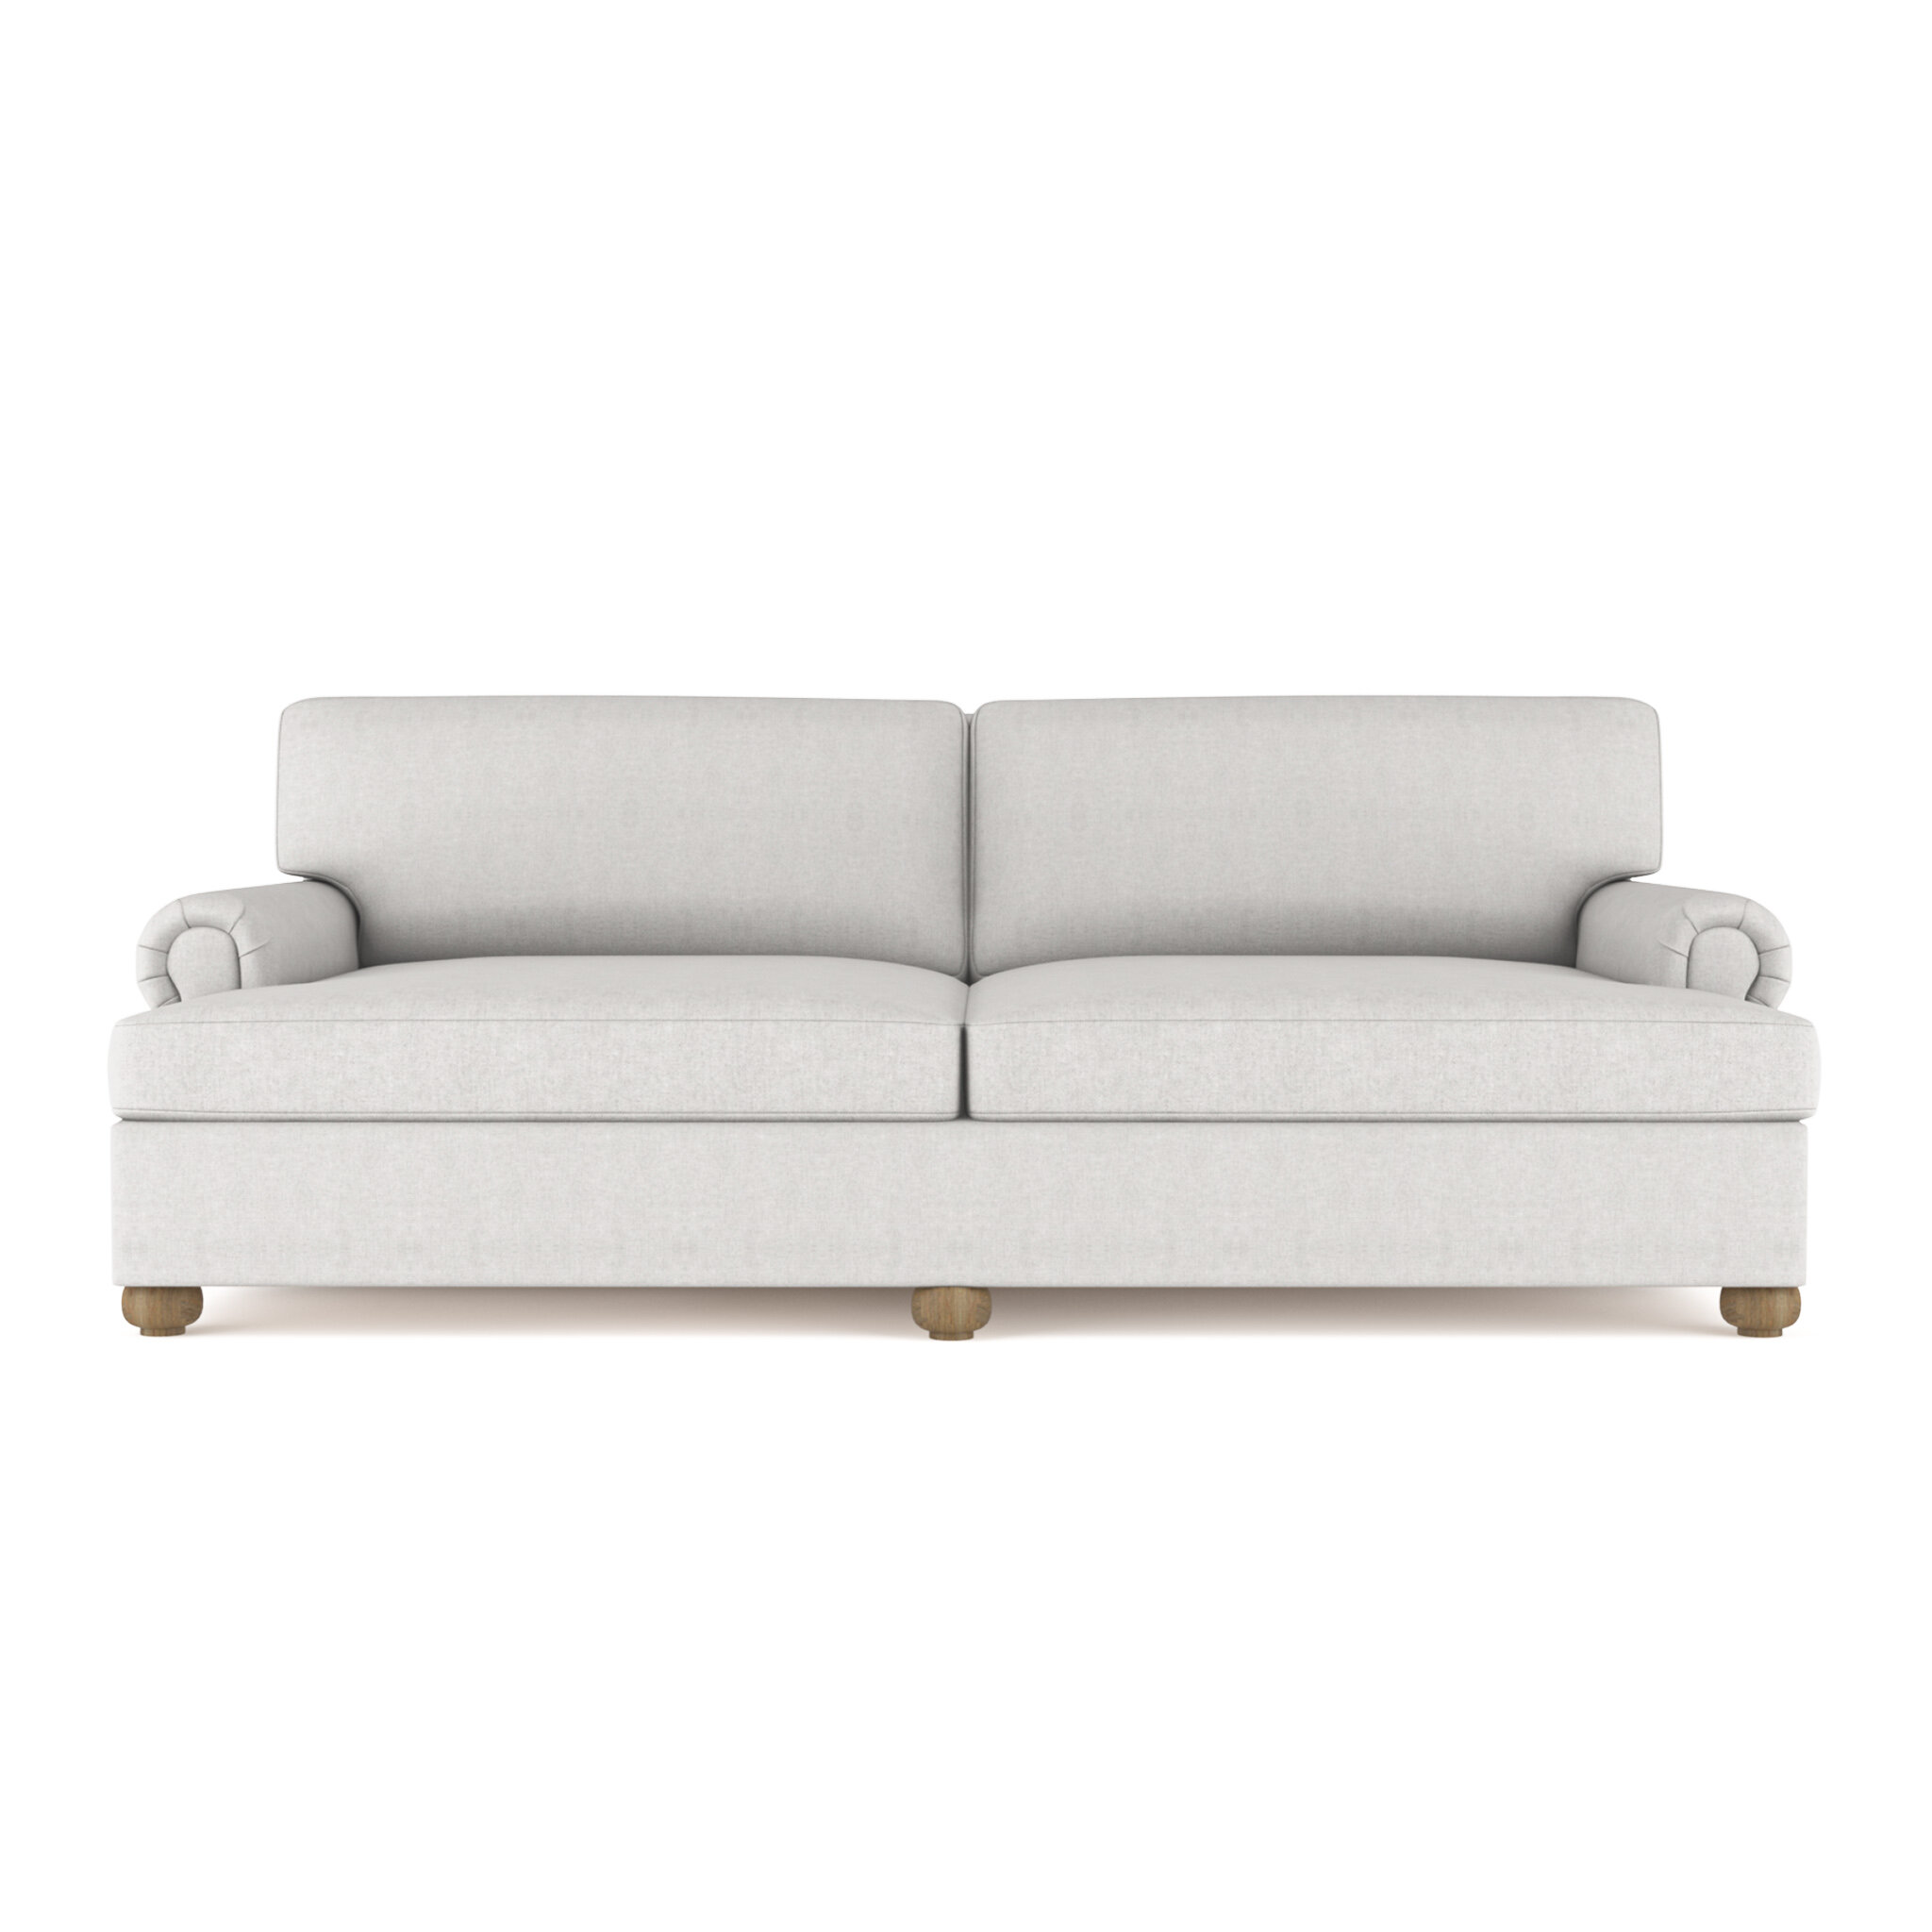 Peachy Austin Sleeper Sofa Pdpeps Interior Chair Design Pdpepsorg